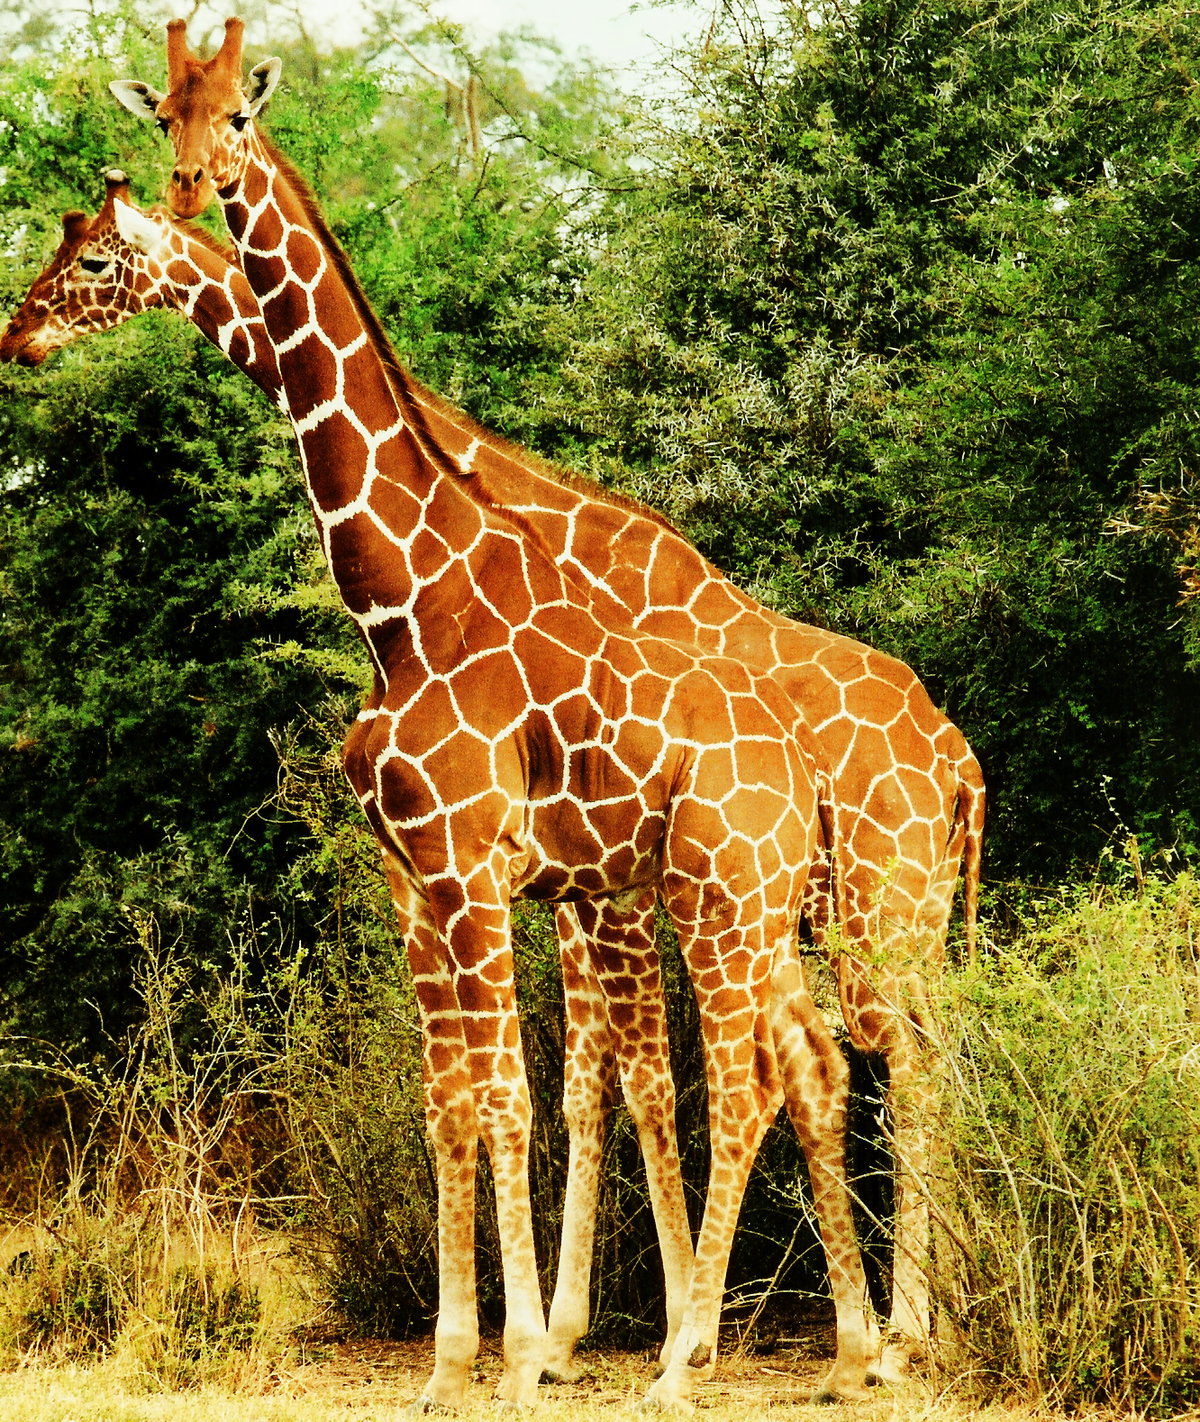 reticulated giraffe - wikipedia